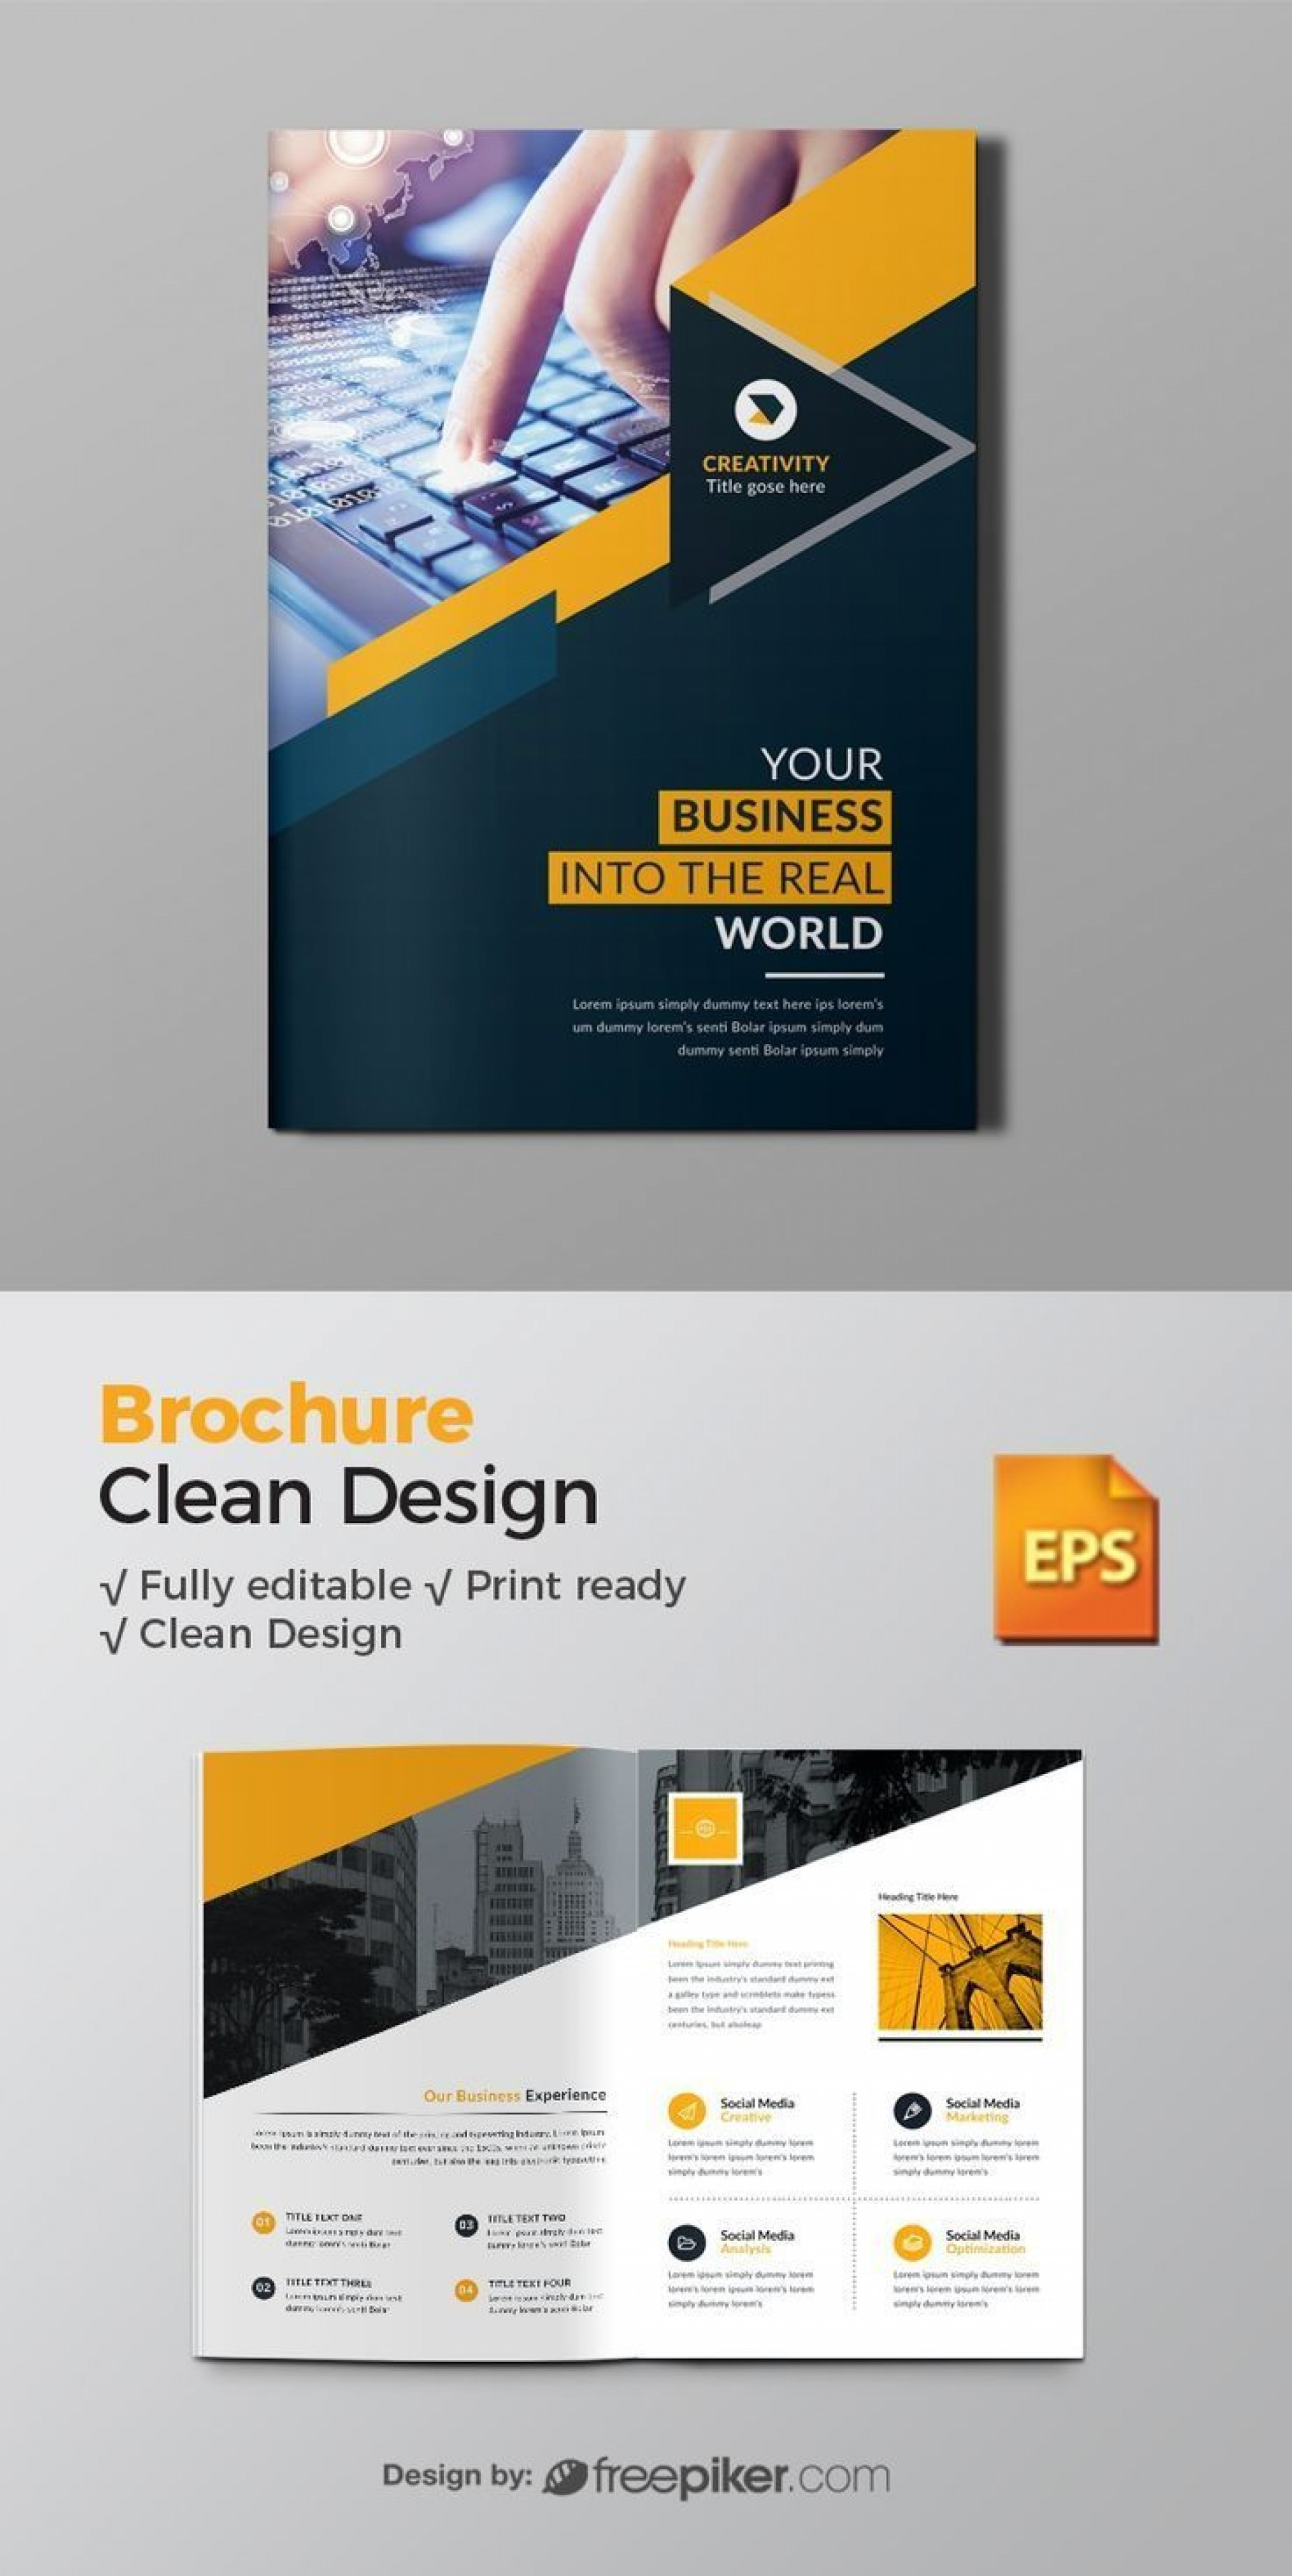 000 Amazing Brochure Design Template Free Download Psd High Definition 1920